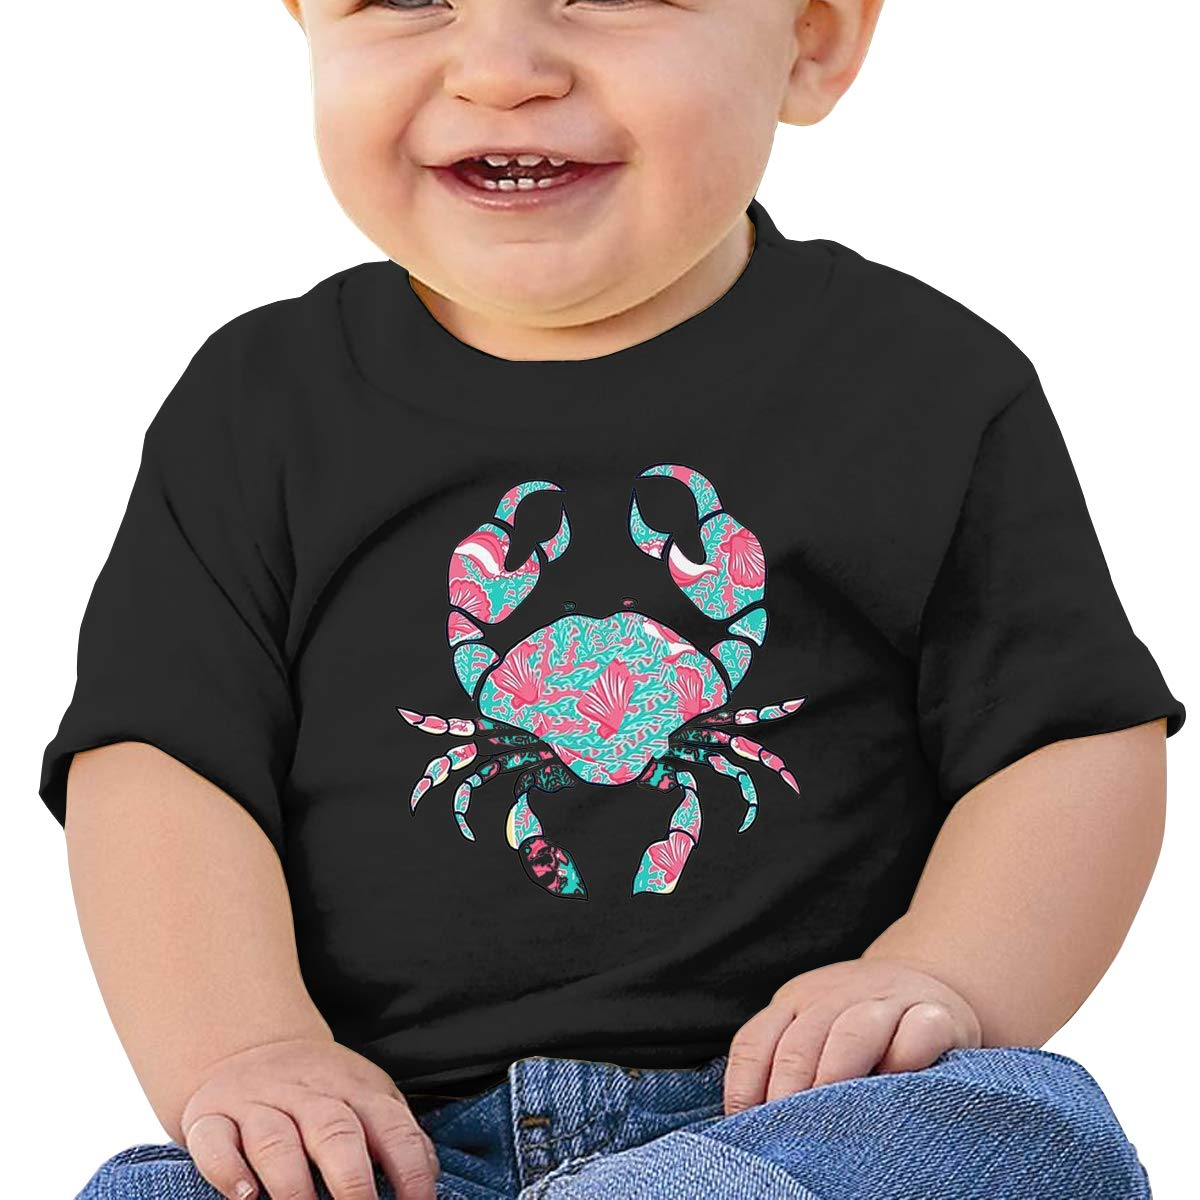 Crab Toddler Short-Sleeve Tee for Boy Girl Infant Kids T-Shirt On Newborn 6-18 Months